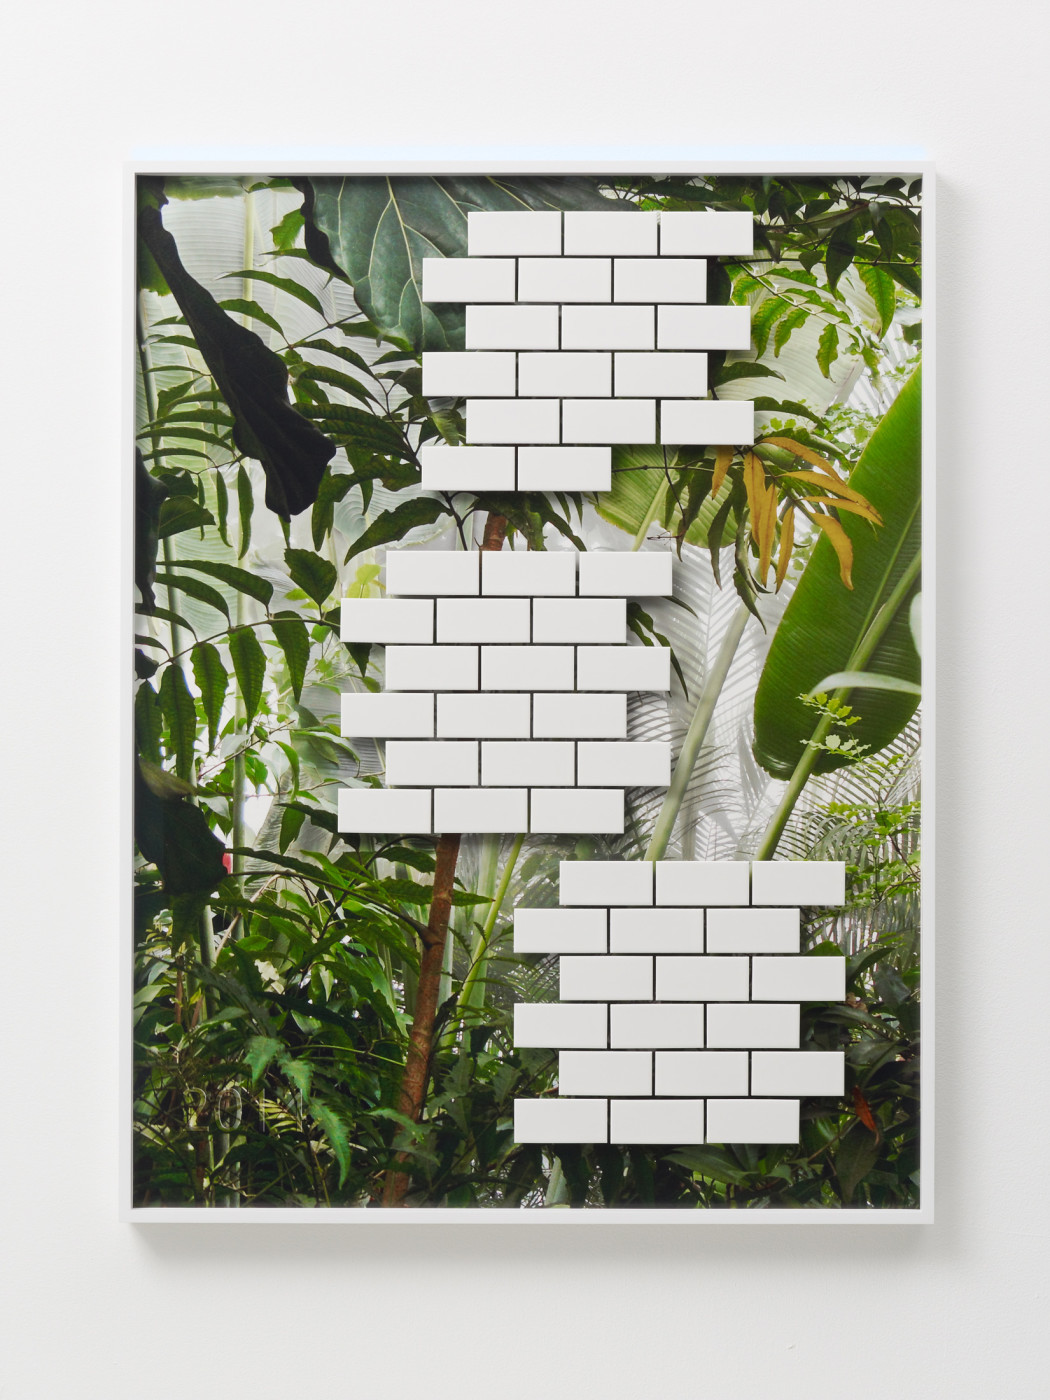 <div class=&#34;title&#34;><em>Jungle #02</em>, 2014</div><div class=&#34;medium&#34;>archival pigment print, ceramic tiles, mirror</div><div class=&#34;dimensions&#34;>108.6 x 83.3 x 4.5 cm<br />42 3/4 x 32 3/4 x 1 3/4 in.</div>